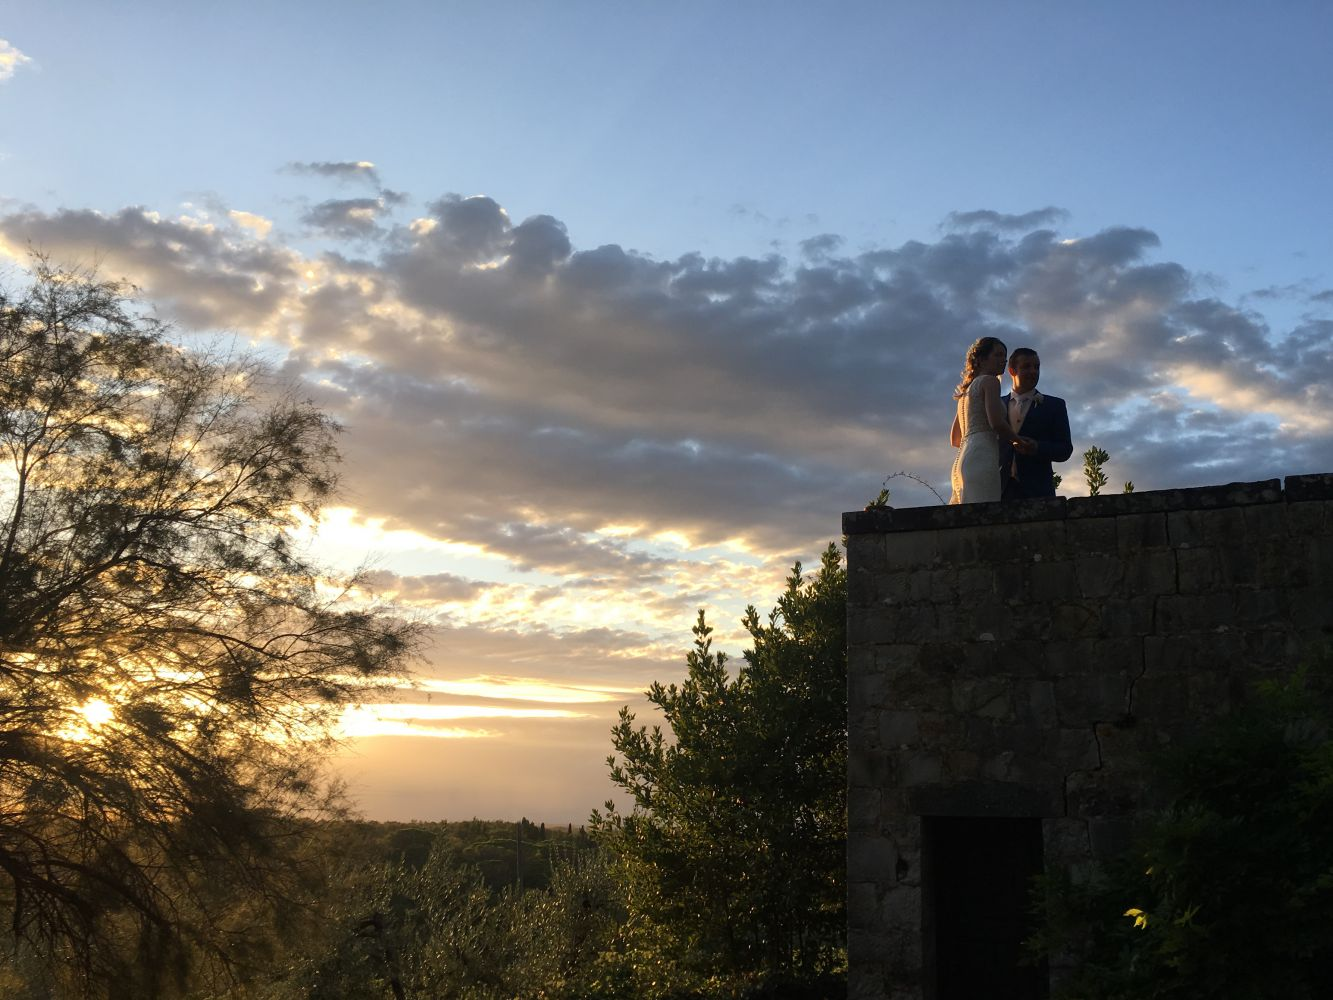 Your Romantic wedding in Relaxing Tuscany</p><p><a class='btn btn-default' href='weddings/'>Read more</a>